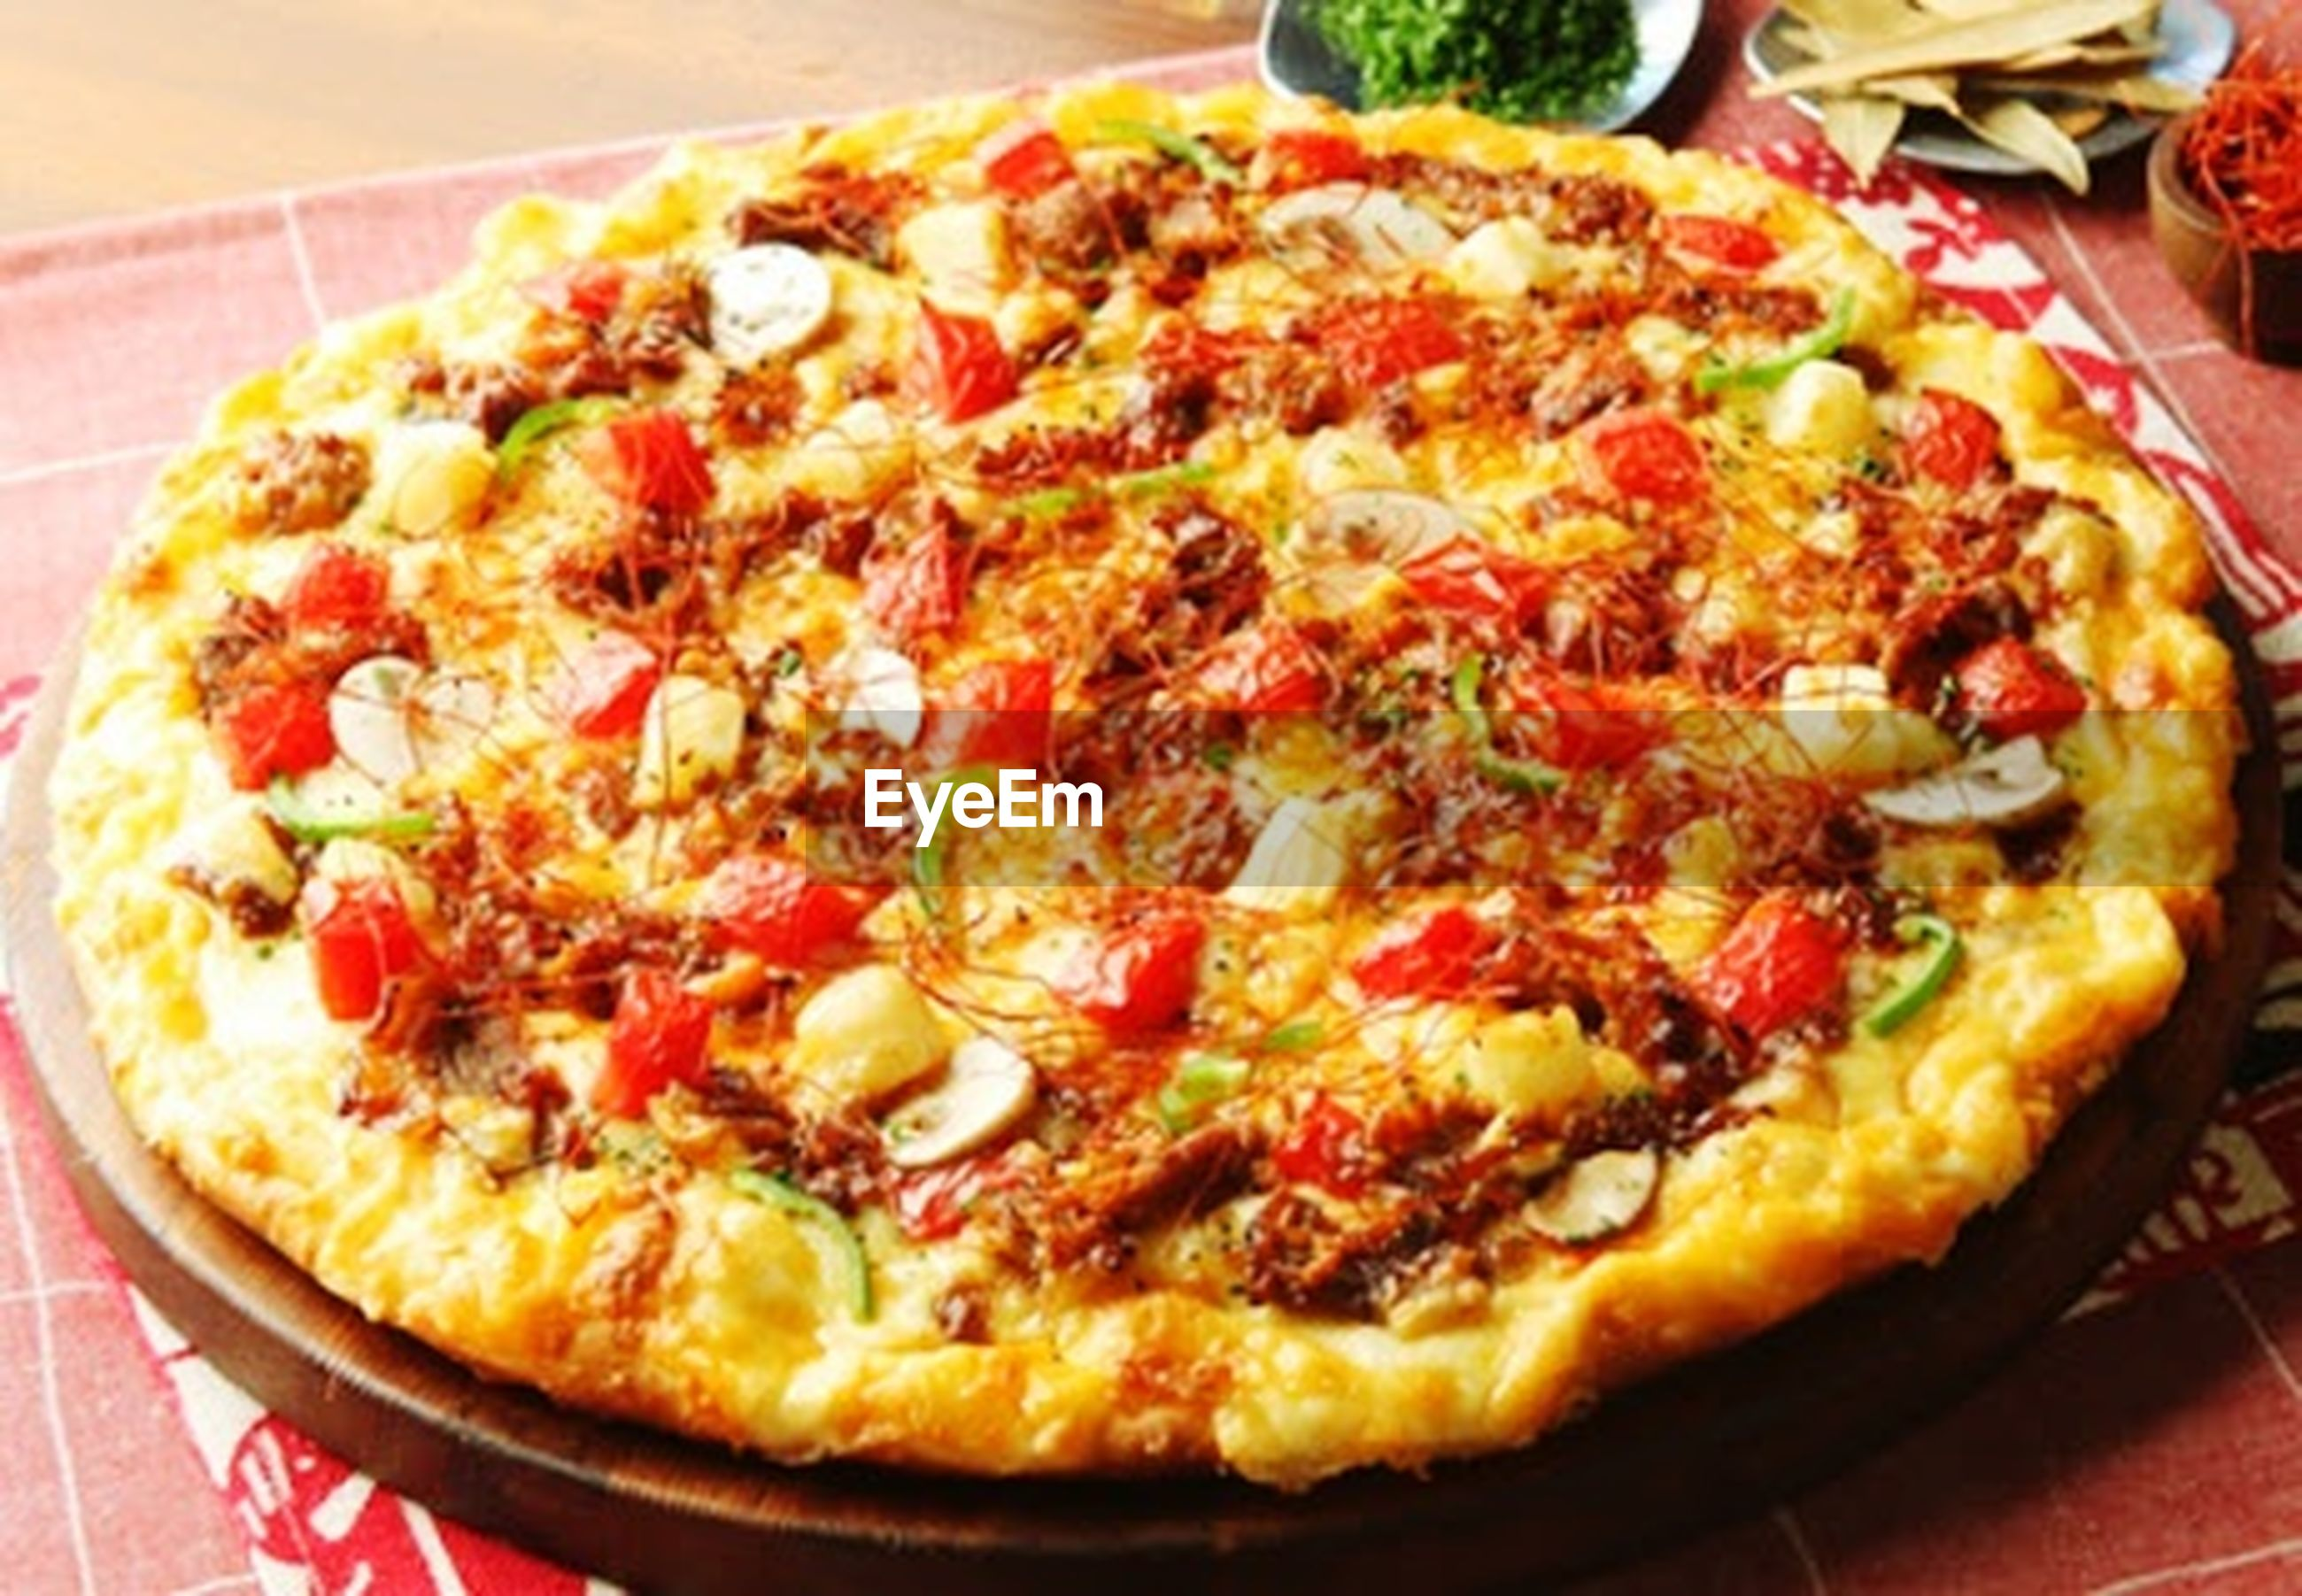 food and drink, food, indoors, freshness, ready-to-eat, pizza, still life, unhealthy eating, close-up, indulgence, plate, high angle view, cheese, table, serving size, no people, temptation, meal, slice